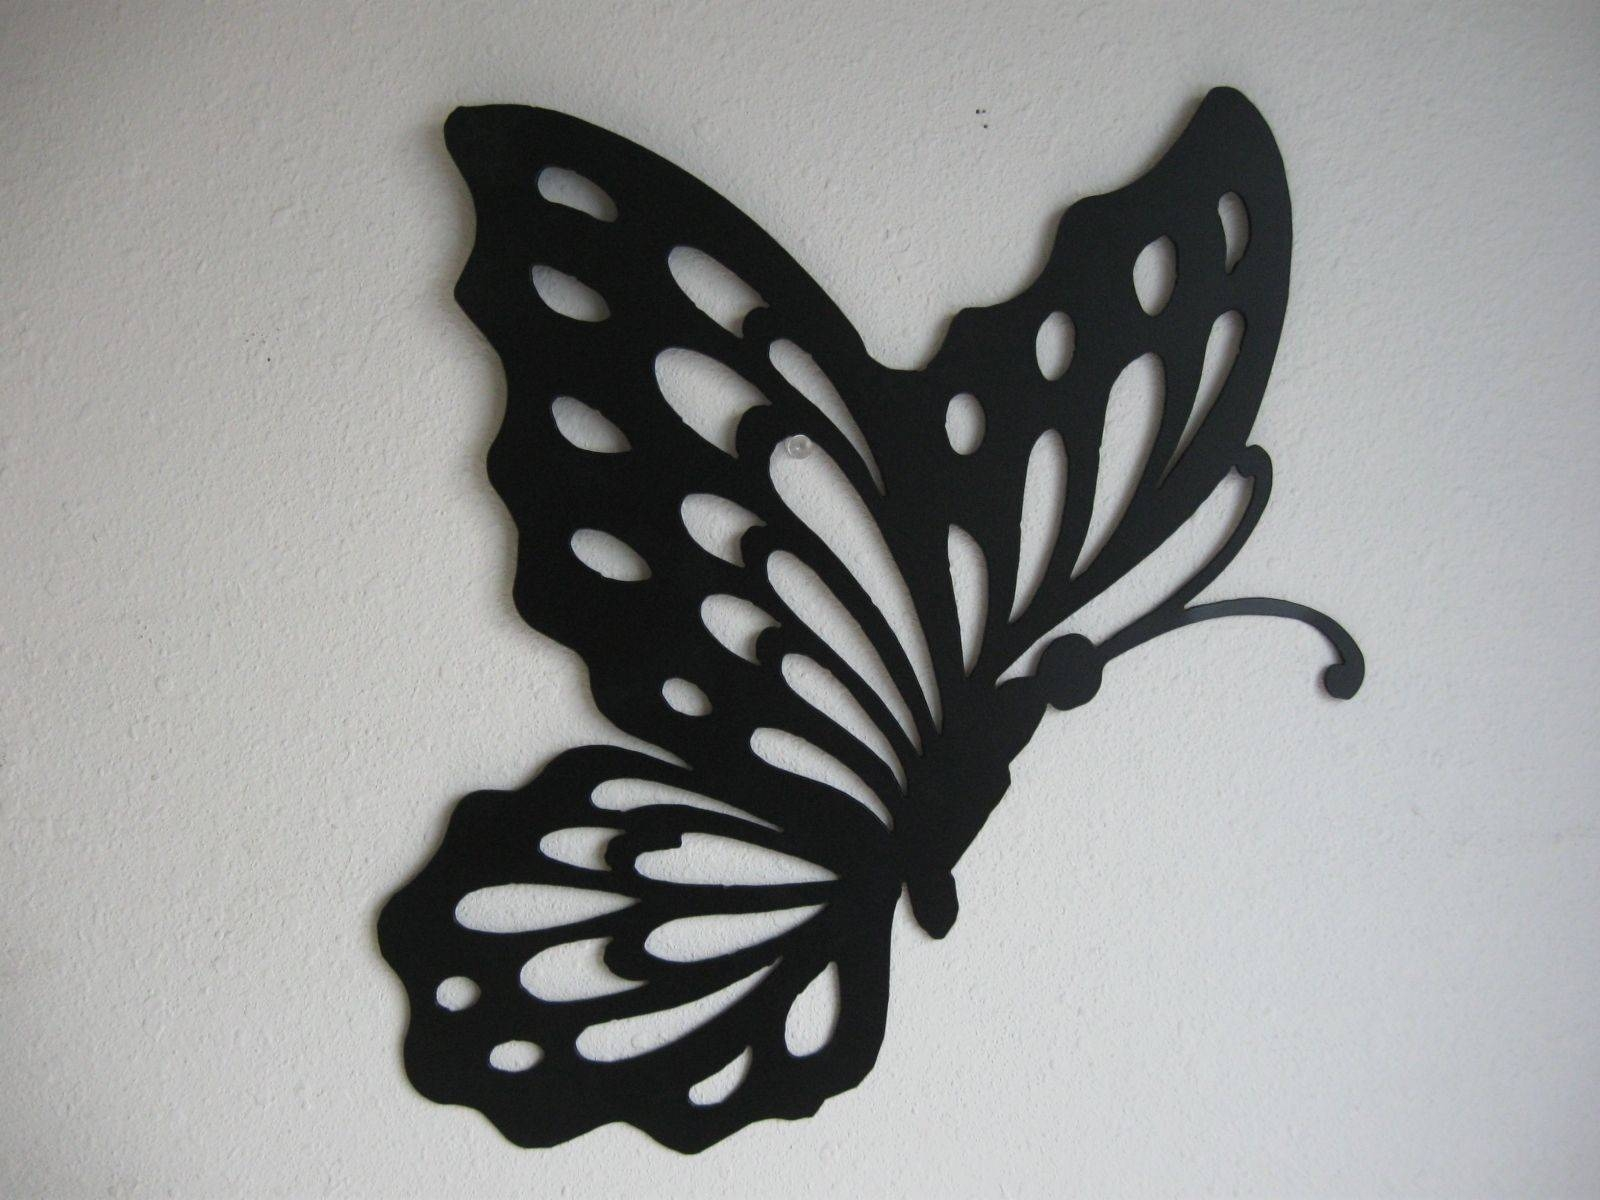 Metal Butterfly Wall Decor — Creative Home Decoration Throughout 2017 Butterflies Metal Wall Art (View 13 of 20)